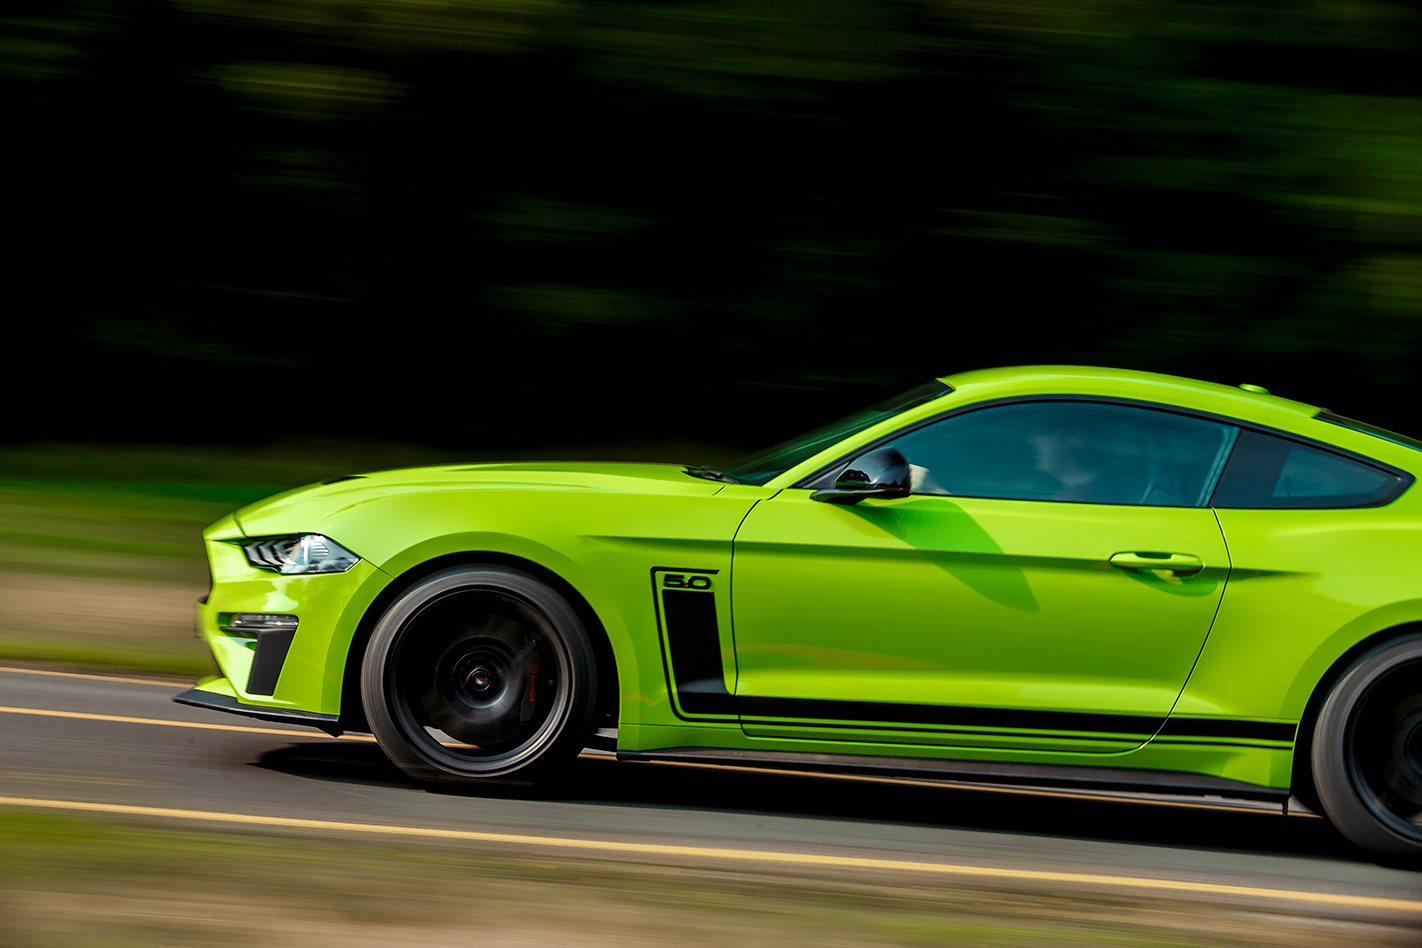 Ford Mustang R-Spec can lose bulk power depending on fuel